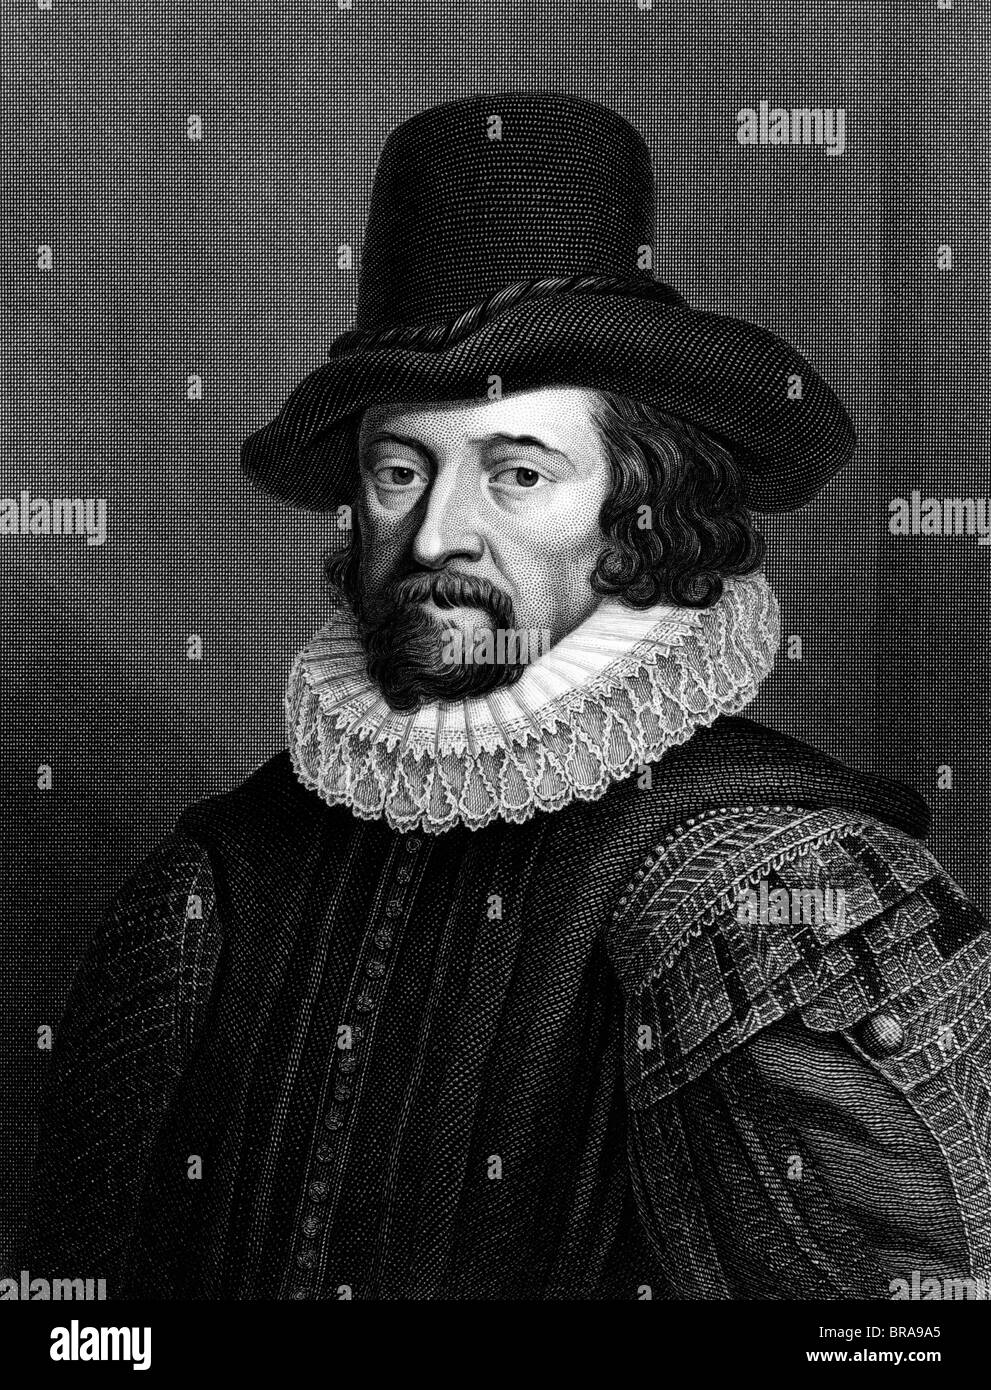 s s portrait lord francis bacon english philosopher 1500s 1600s portrait lord francis bacon english philosopher essayist courtier